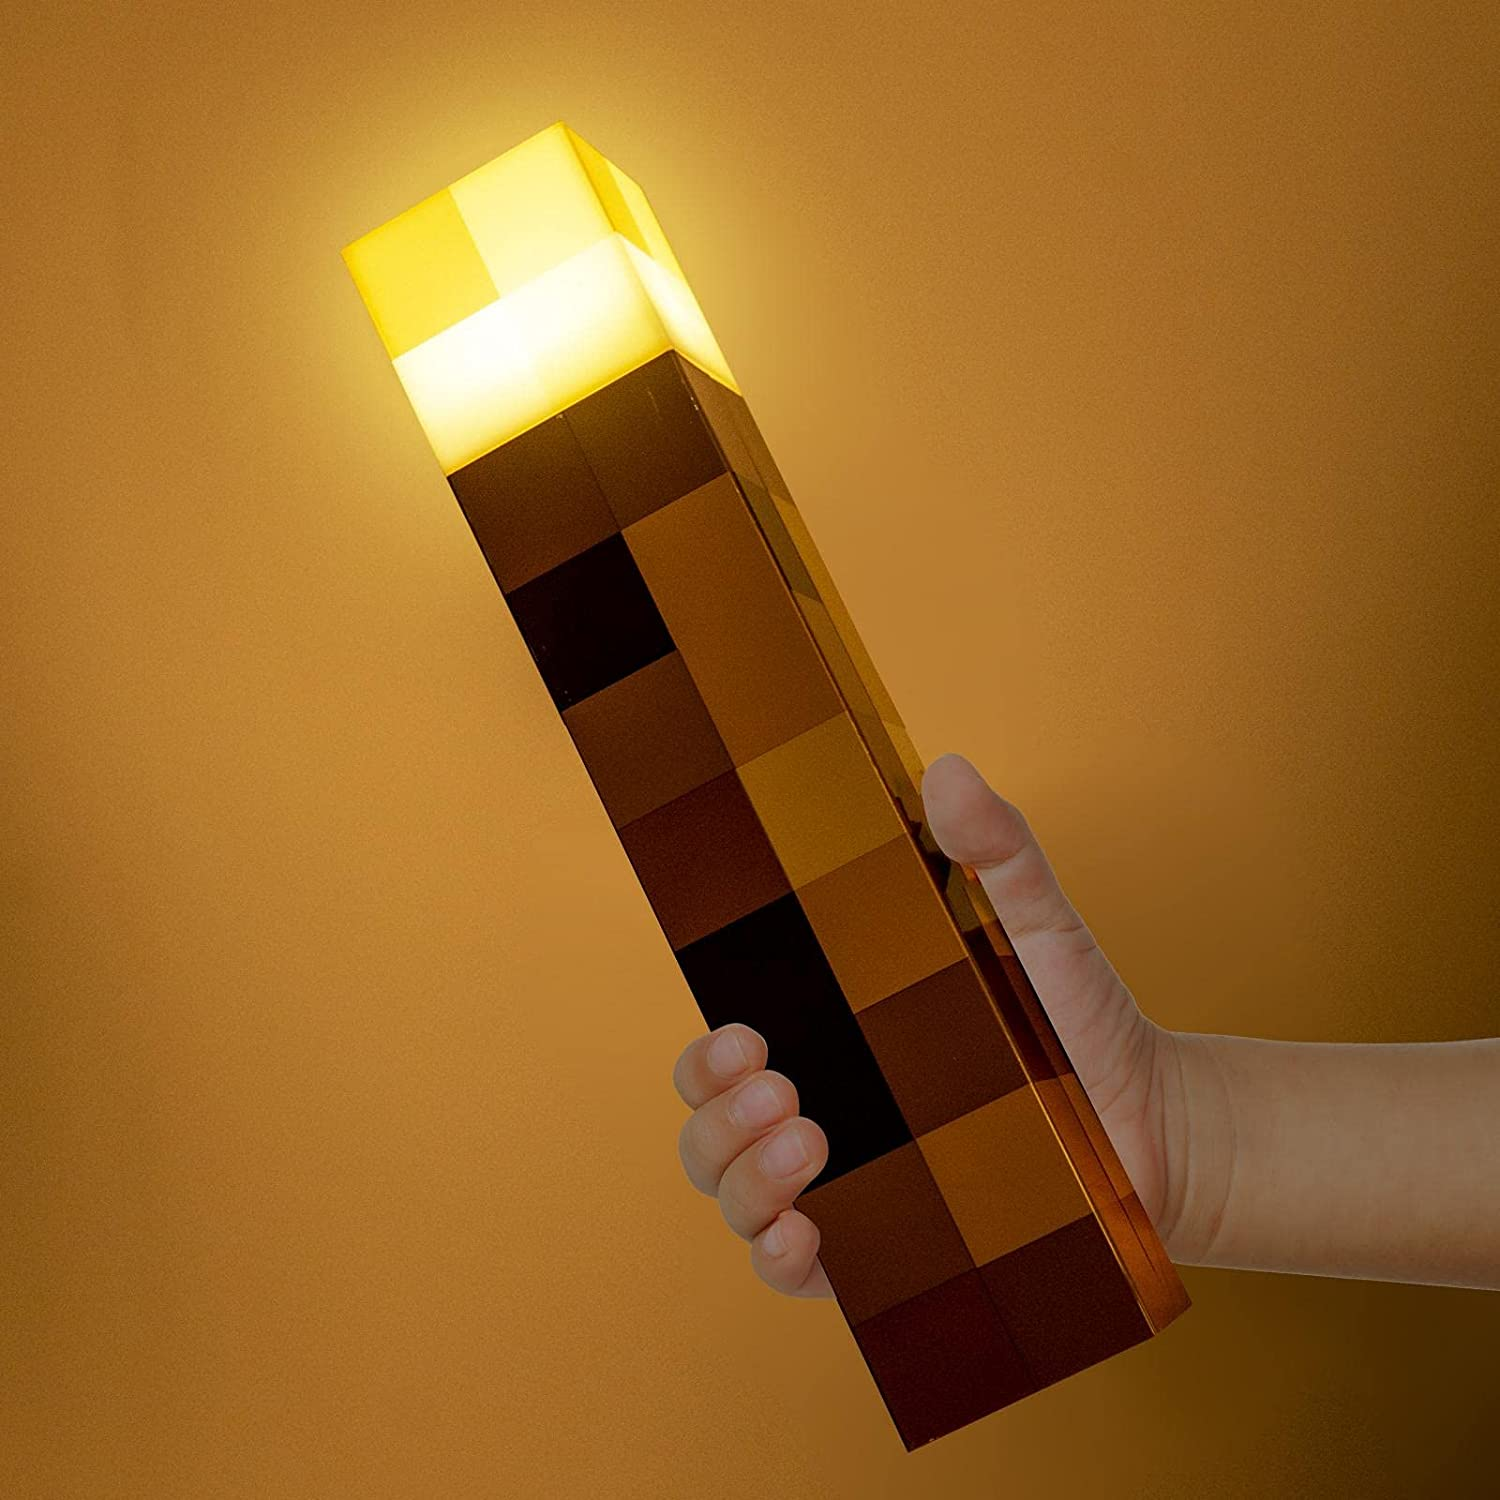 MOOK sold out depot Brownstone Pixels Torch Light Rechargeabl LED USB 11.2-Inch